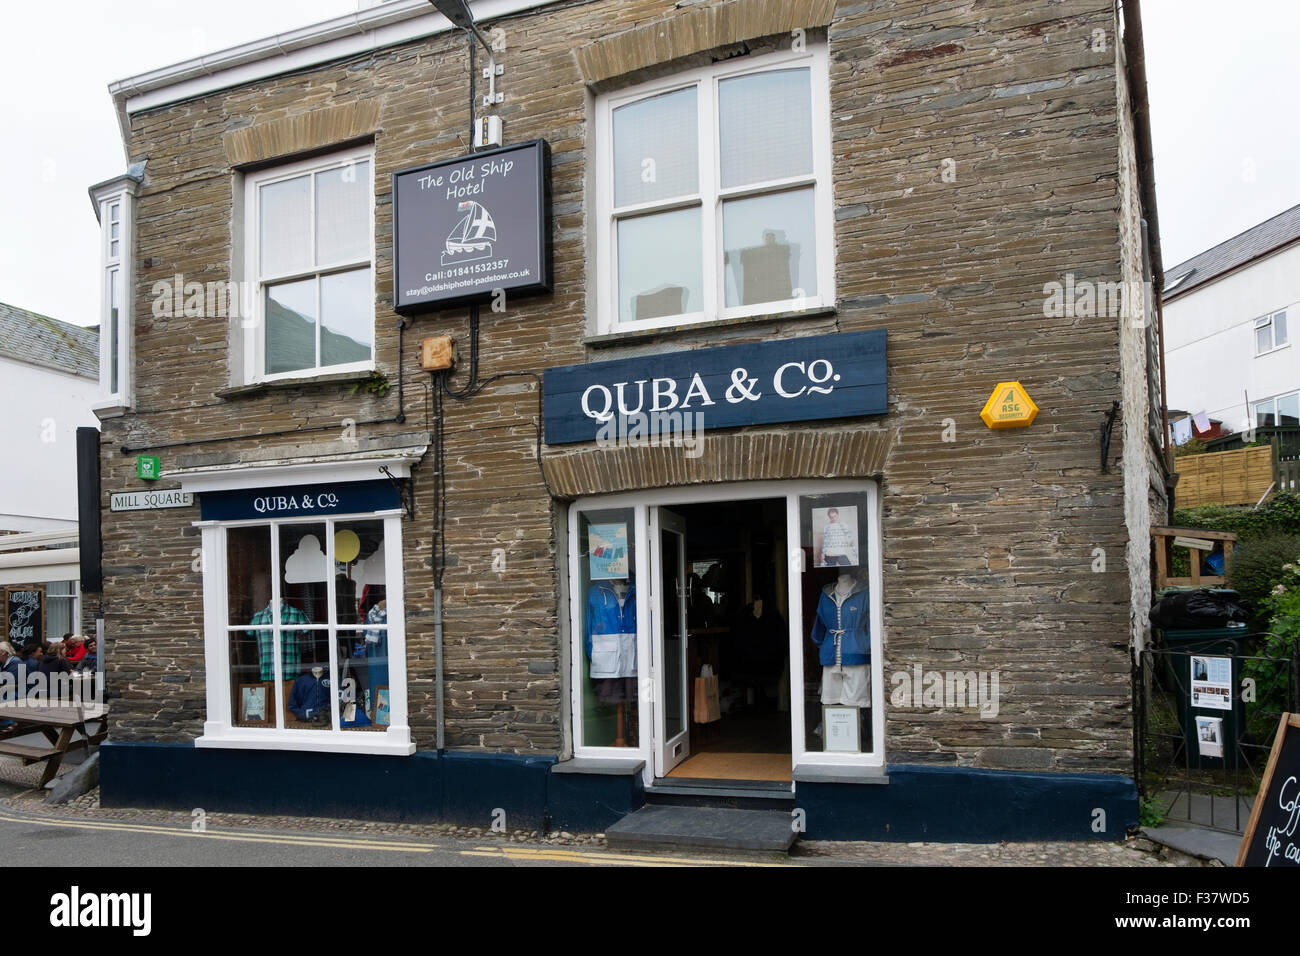 Quba and Co. clothes shop Padstow Cornwall UK. - Stock Image